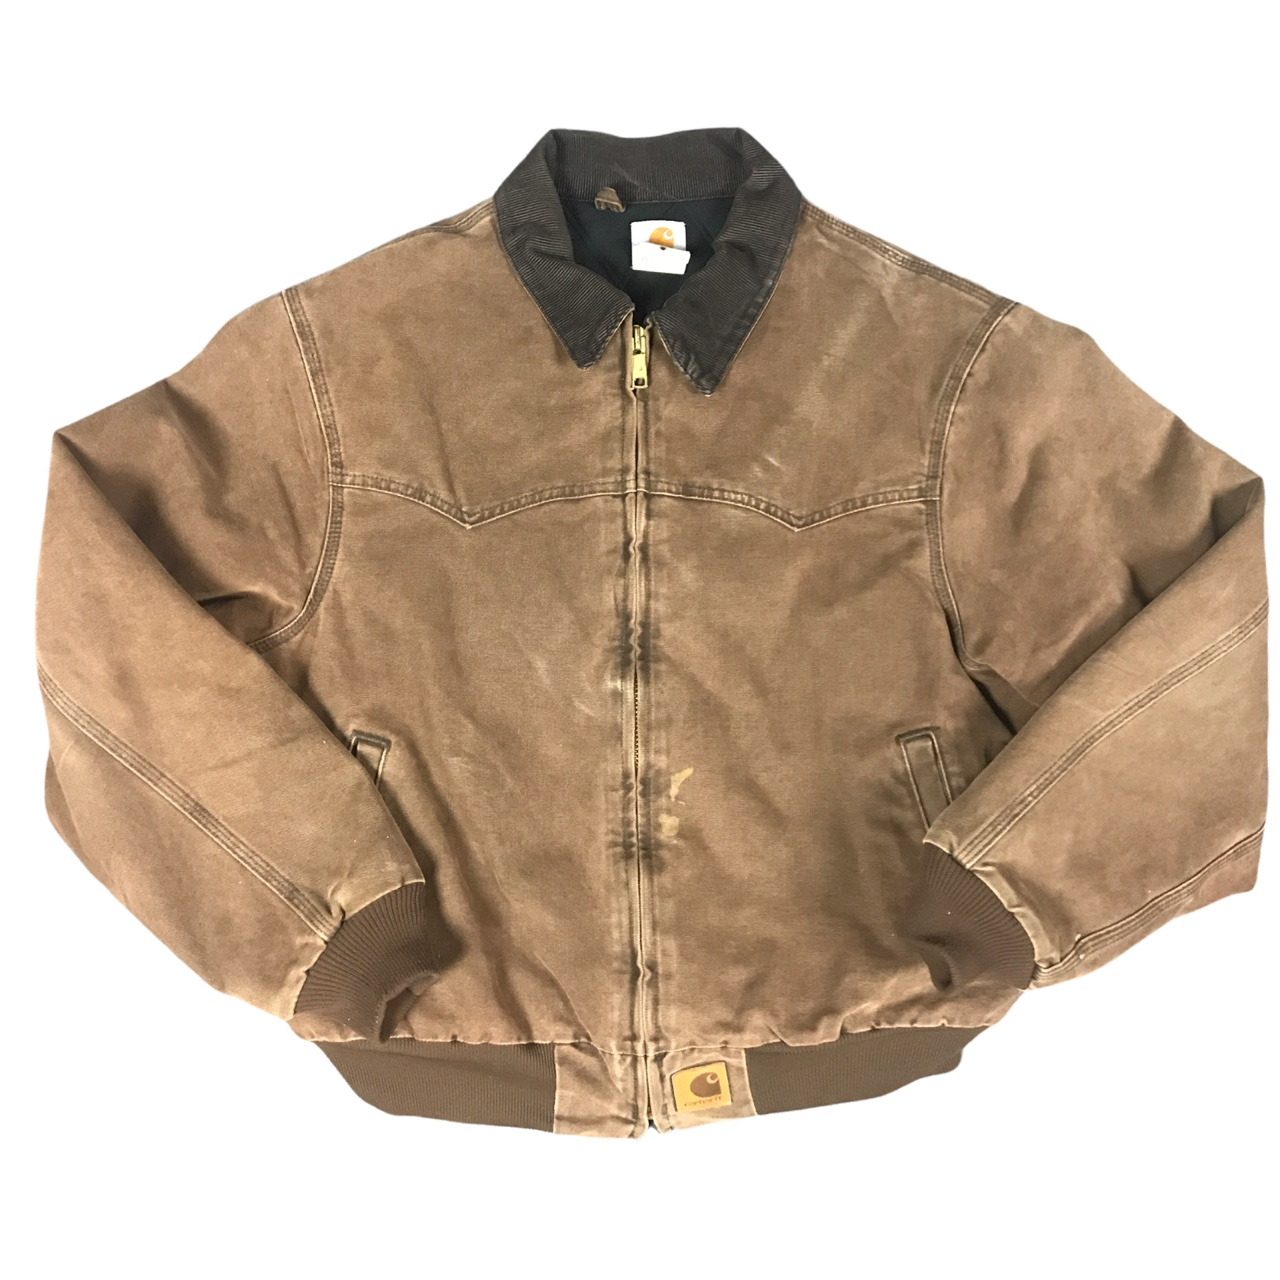 Product Image 1 - 🔥 Dope vintage 90s Carhartt